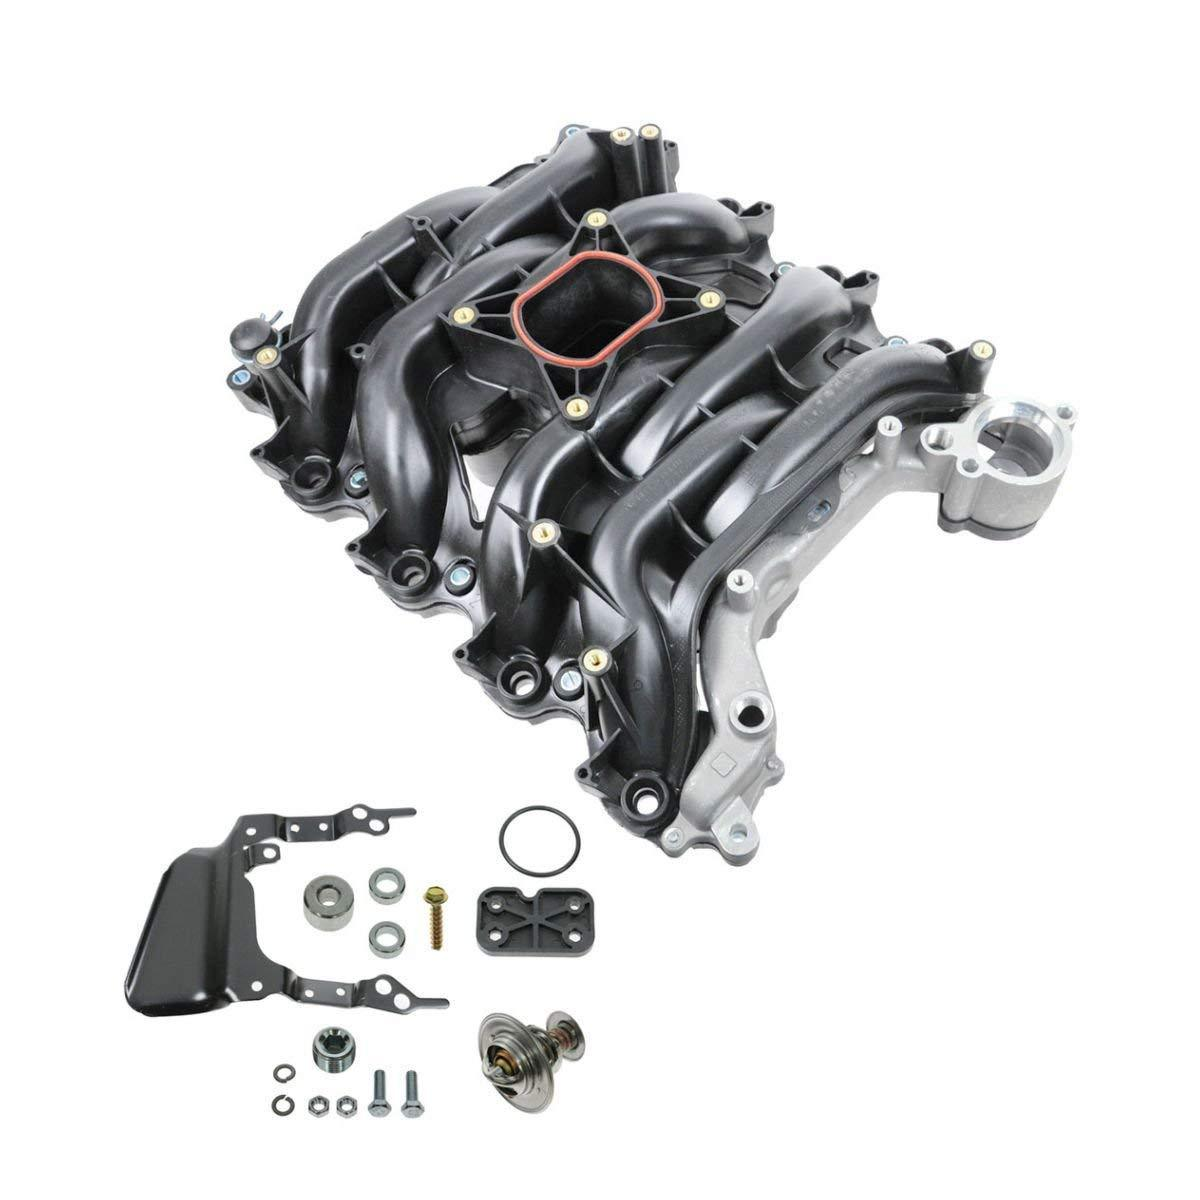 Intake Manifold w/Thermostat & Gaskets Kit for <em>Ford</em> Lincoln Mercury 4.6L V8